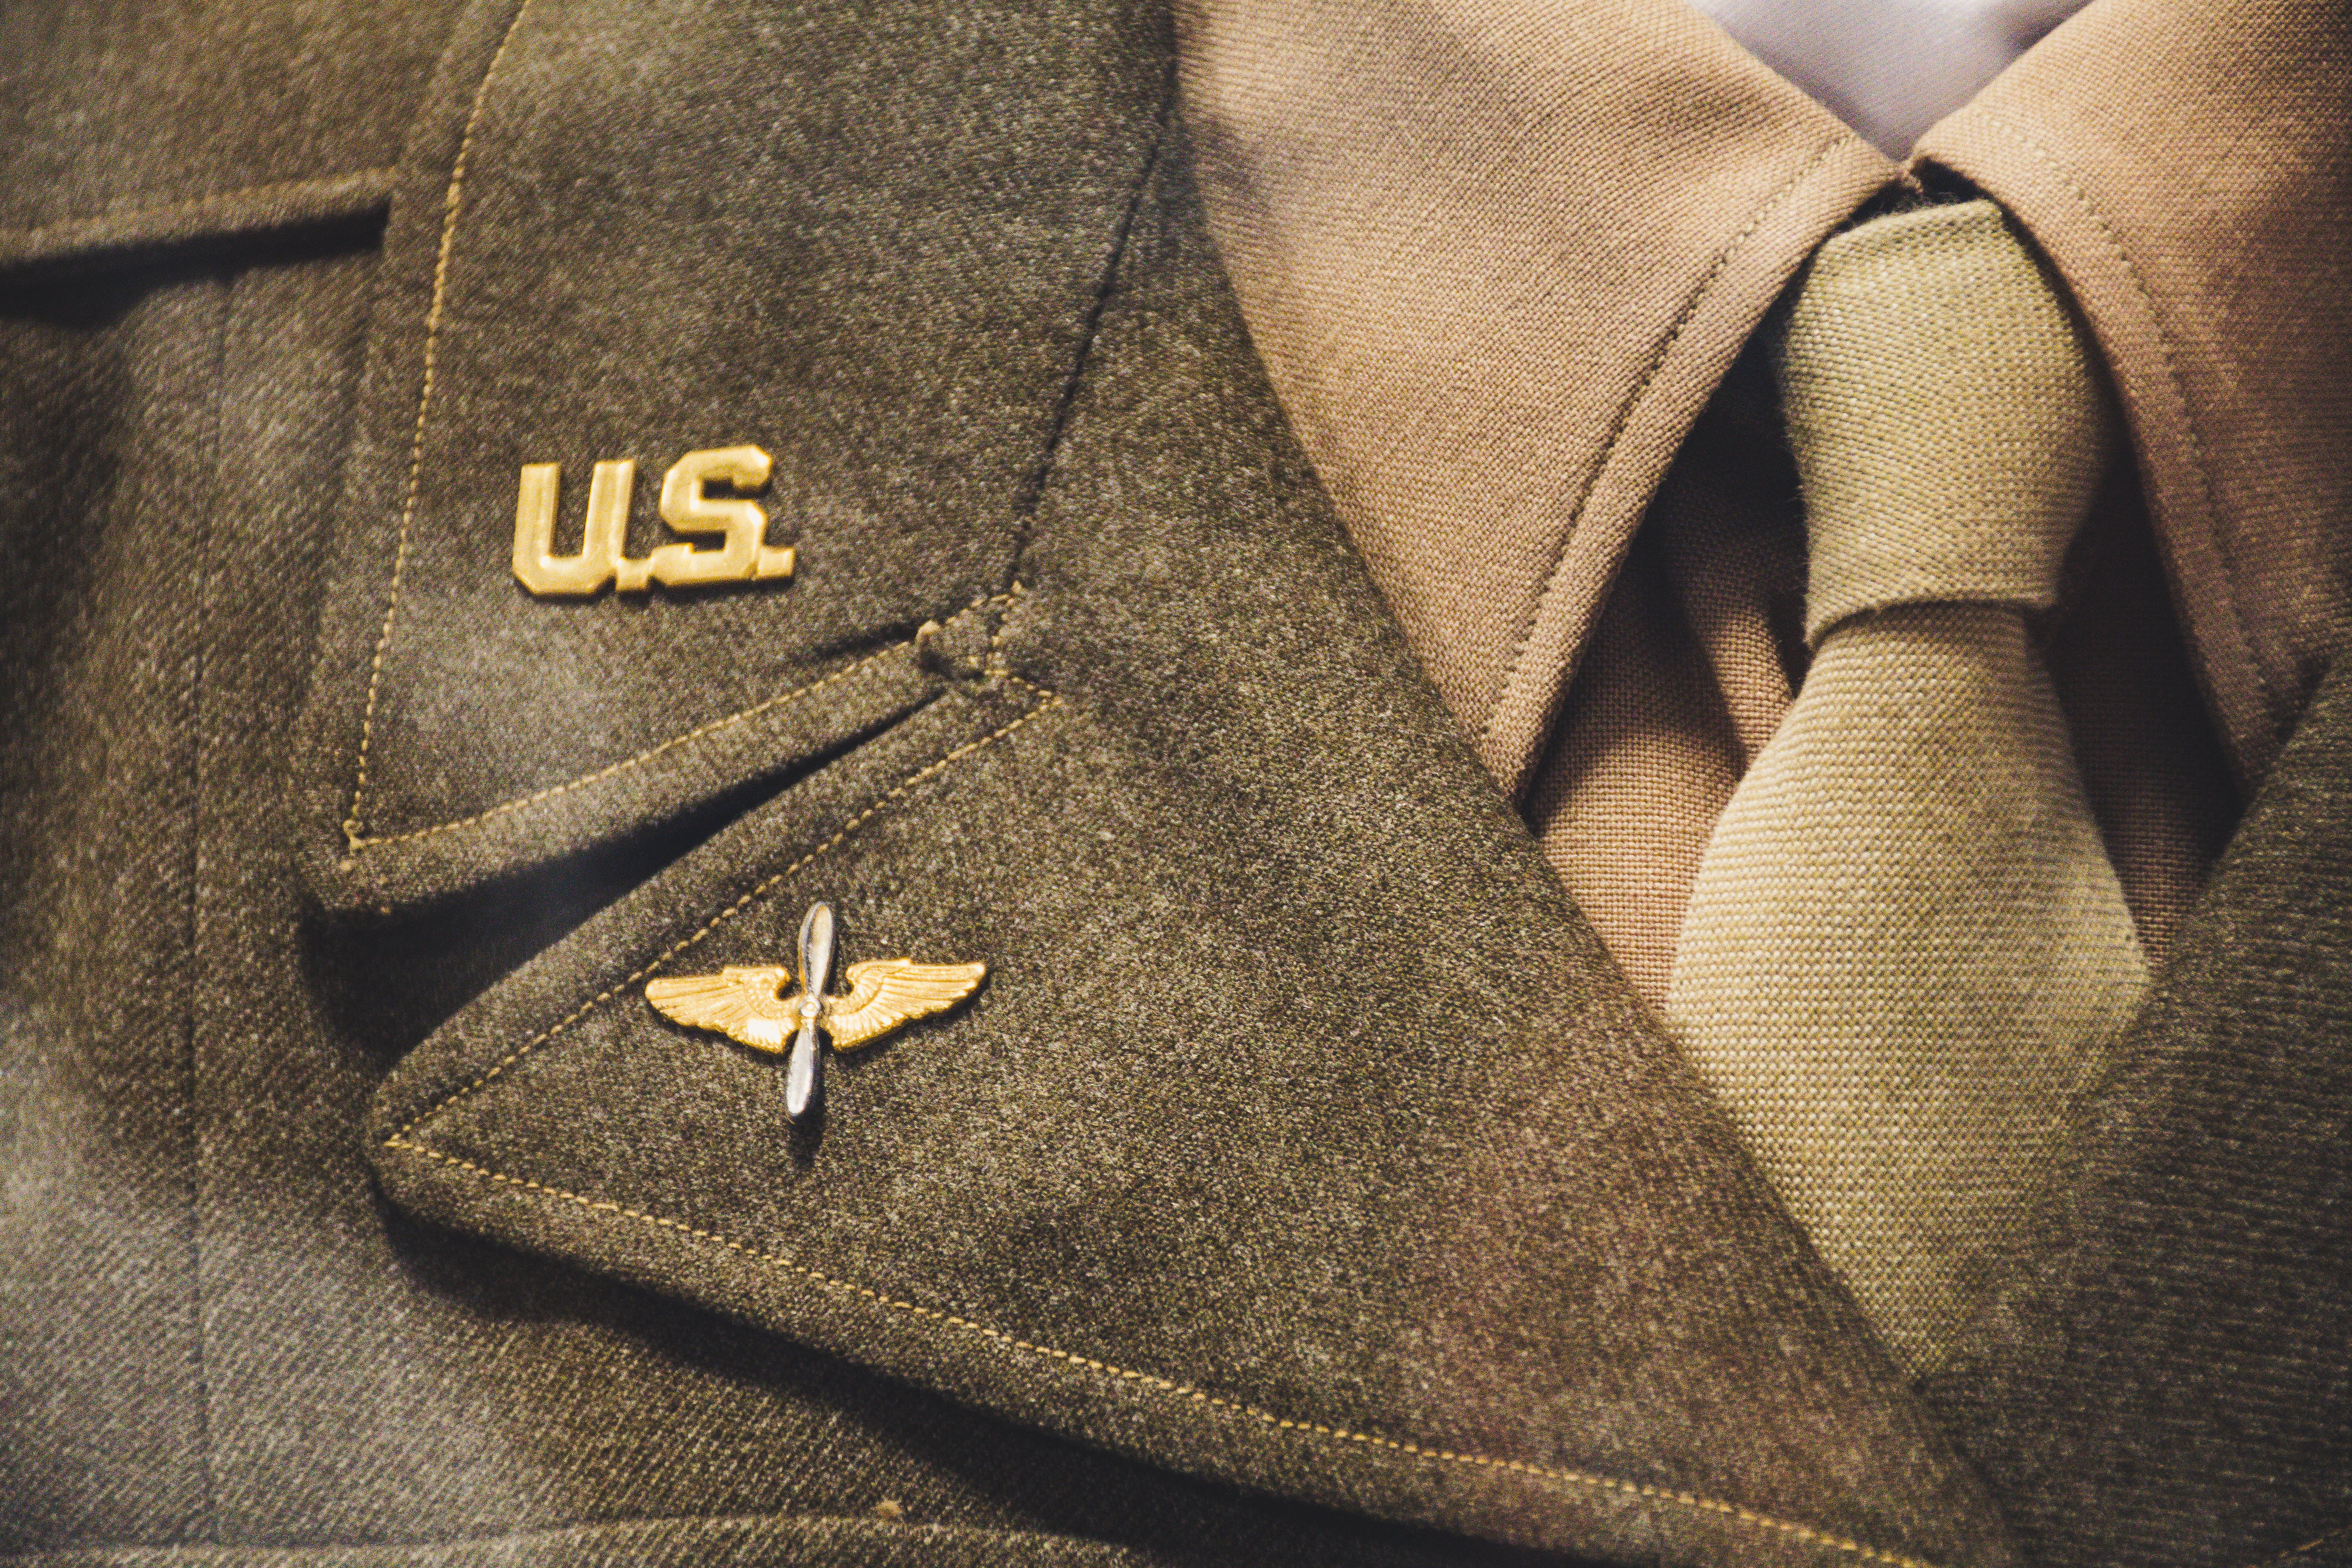 Gold-colored Us Brooch on Apparel